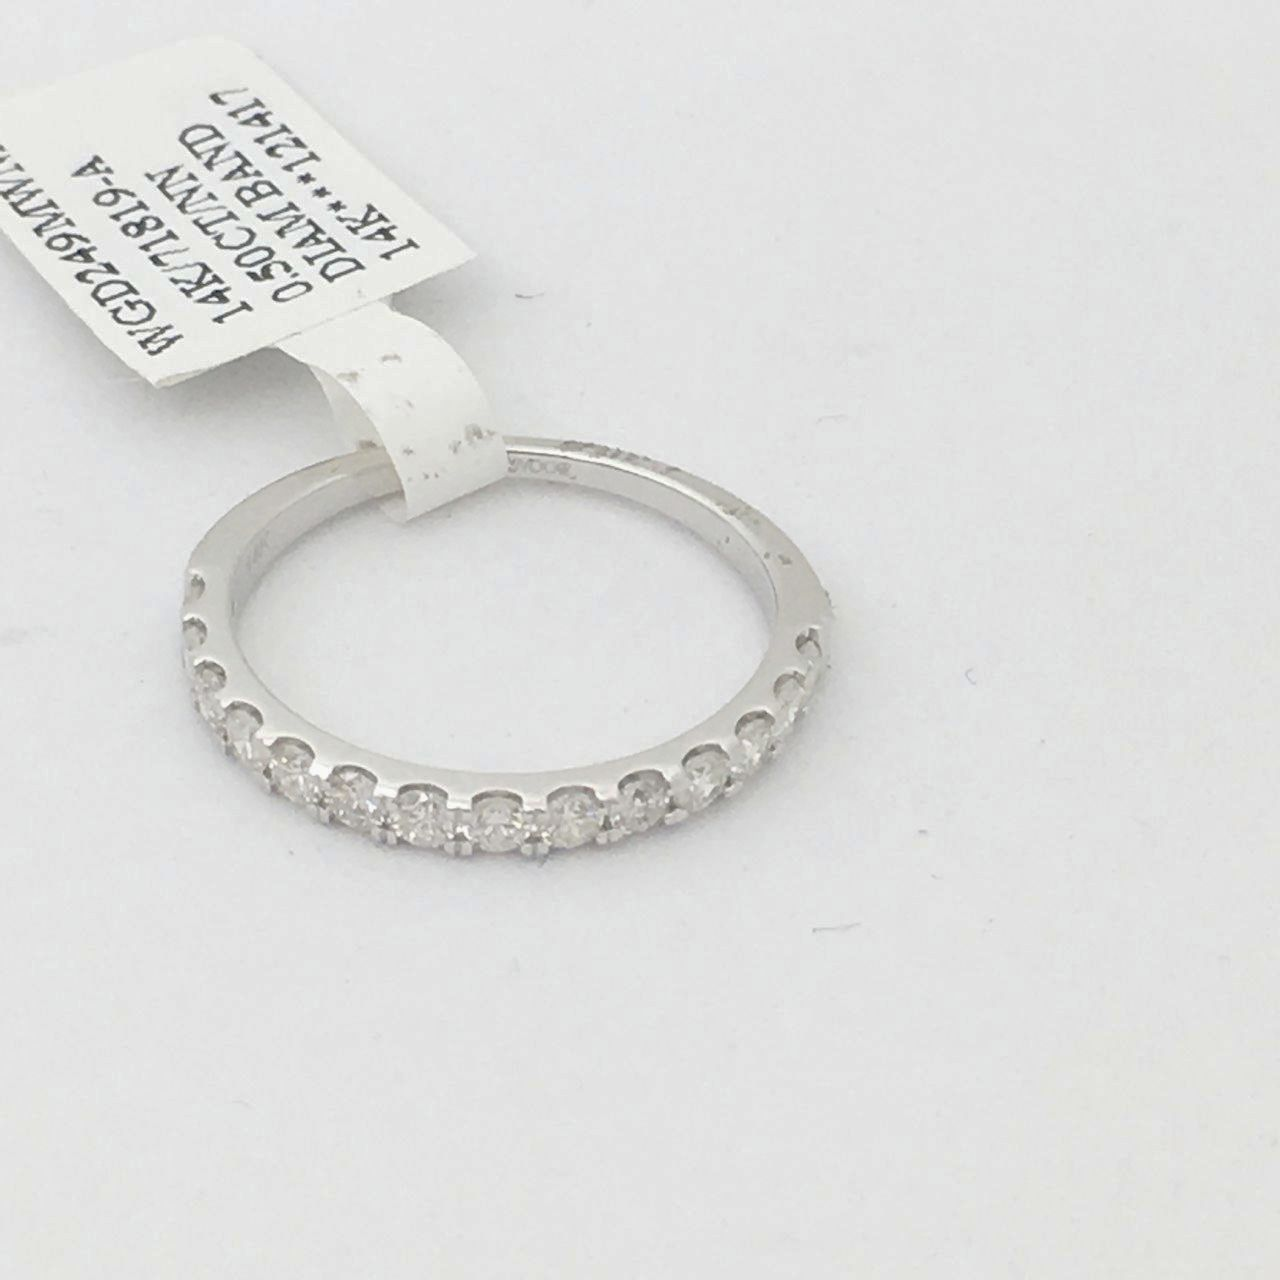 14K White Gold & Genuine Diamond Ring $1245 NWT Size 7